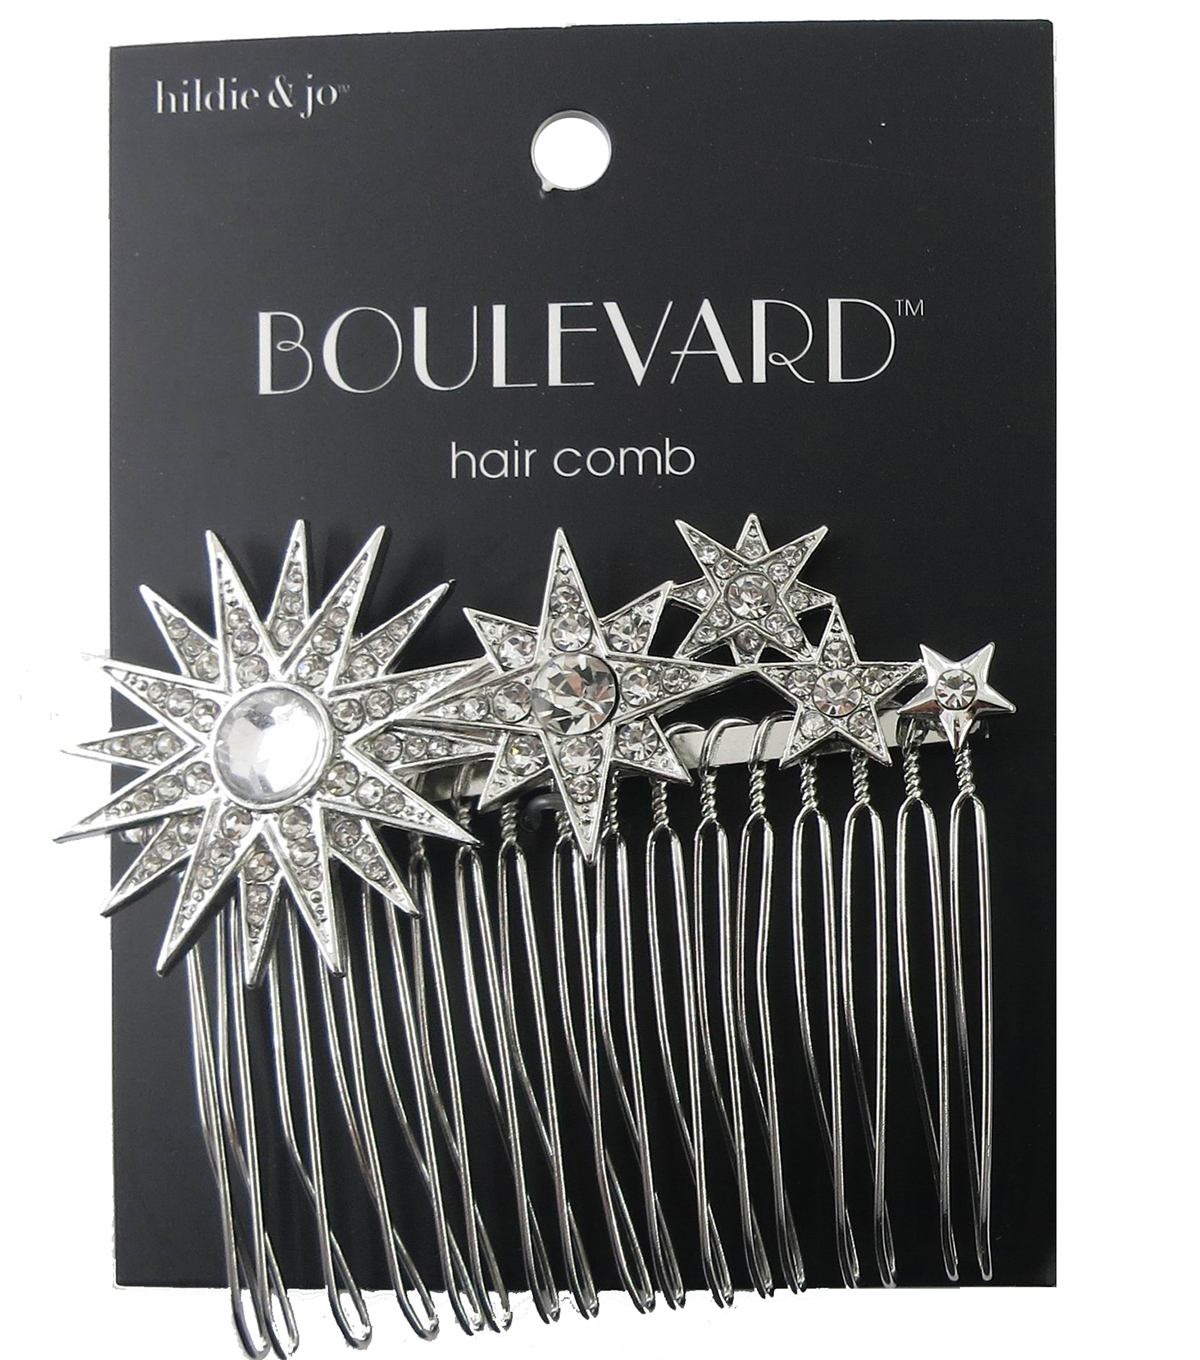 hildie & jo Boulevard Silver Hair Comb-Stars with Clear Crystals